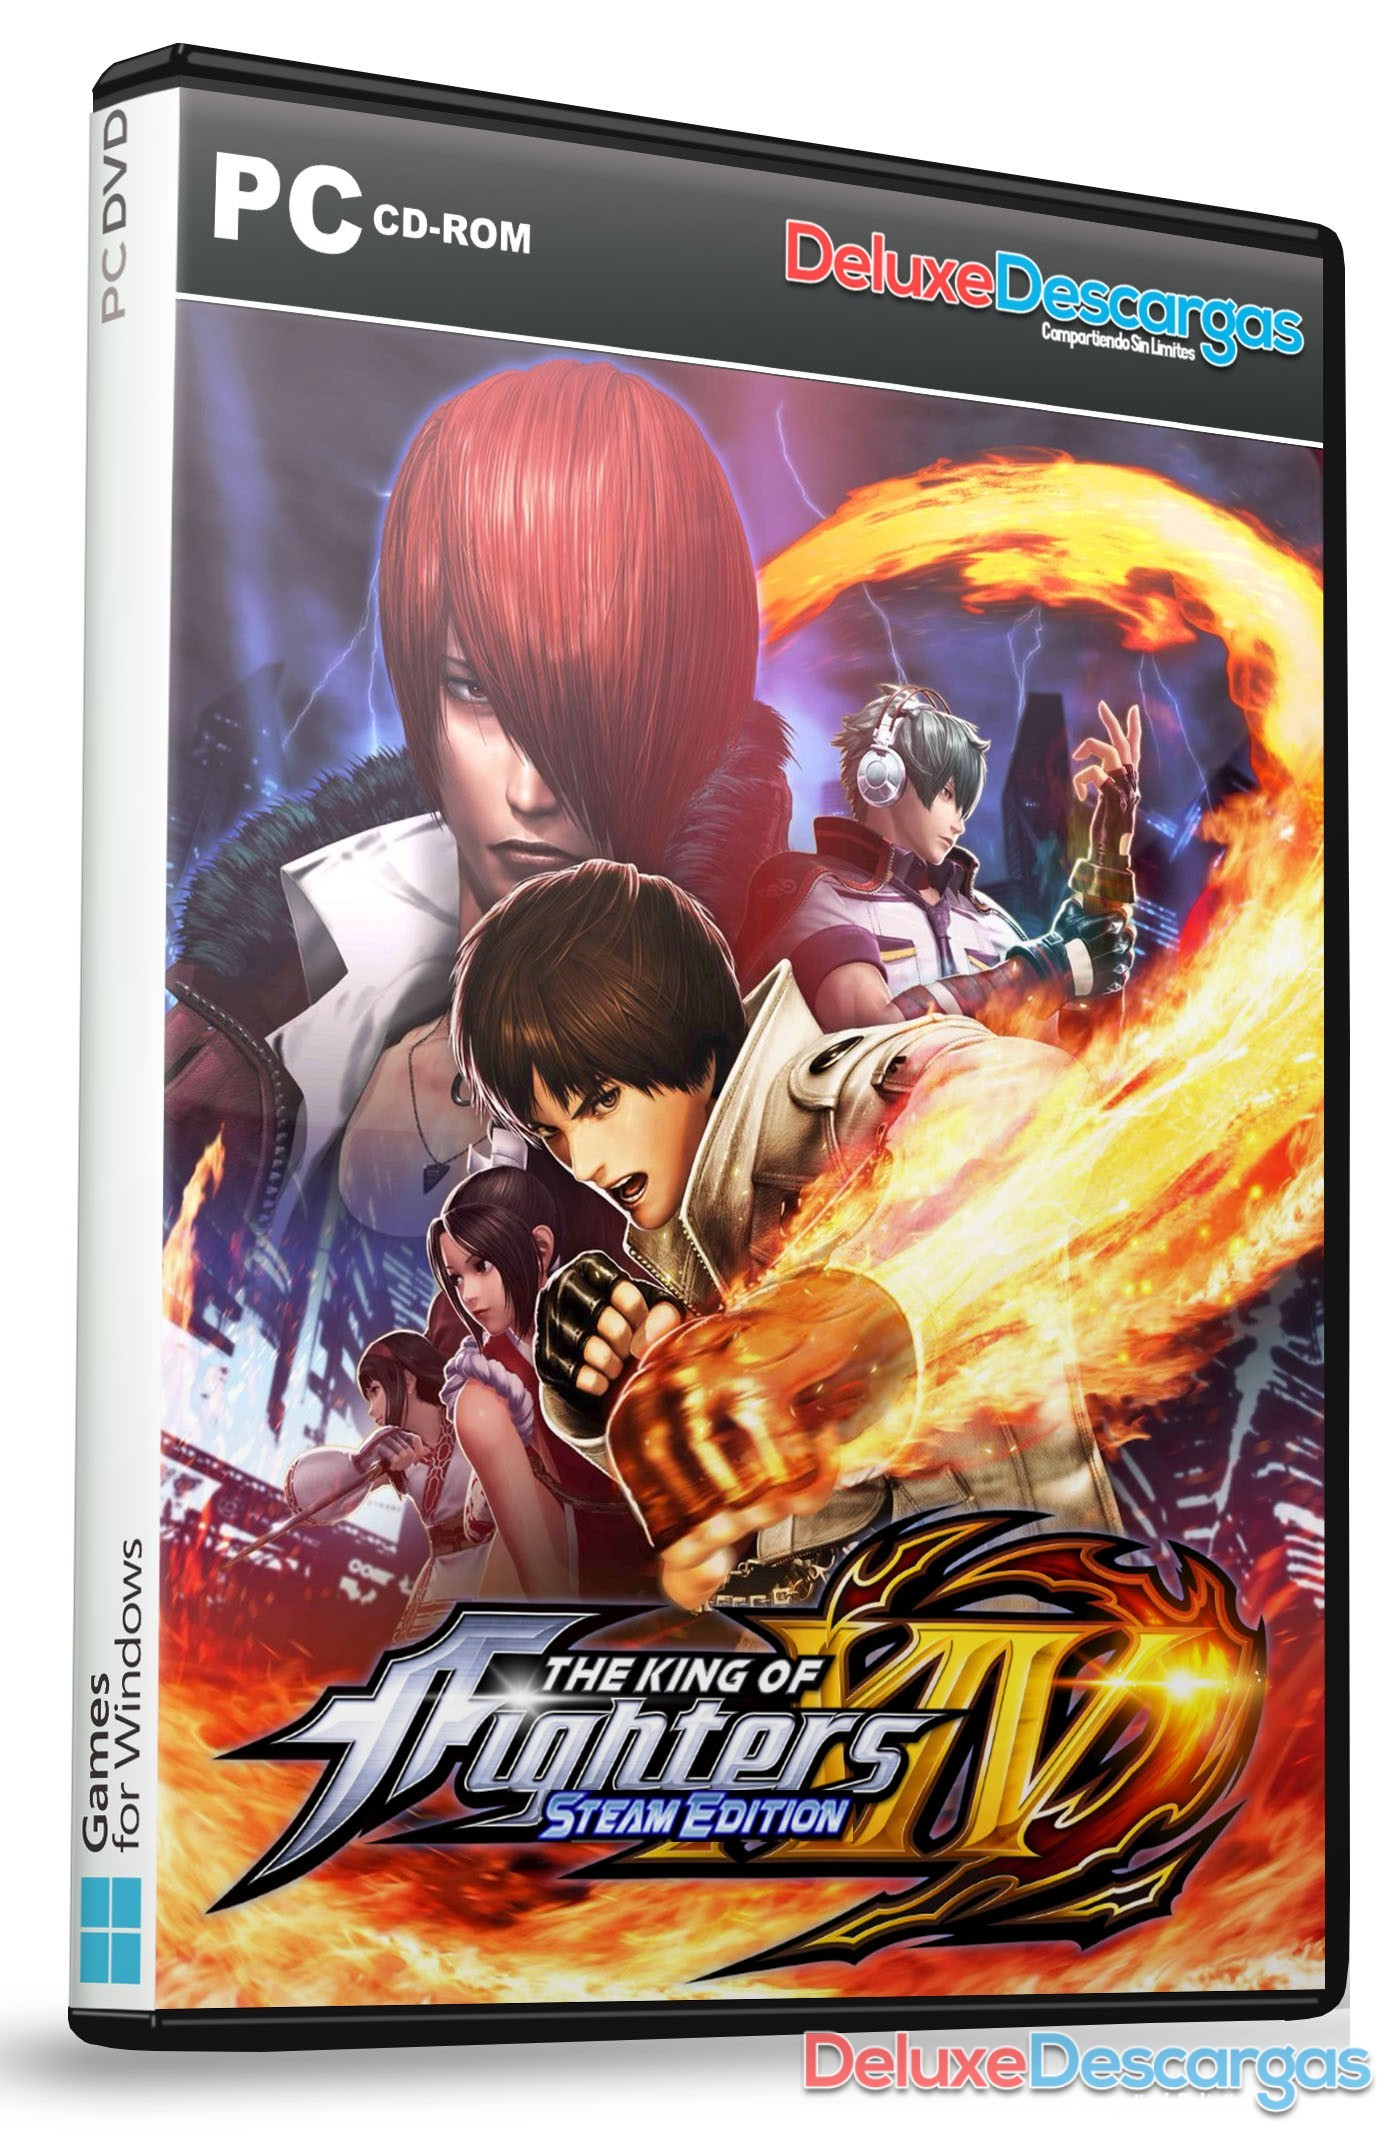 Descargar The King Of Fighters Xiv Steam Edition Multi